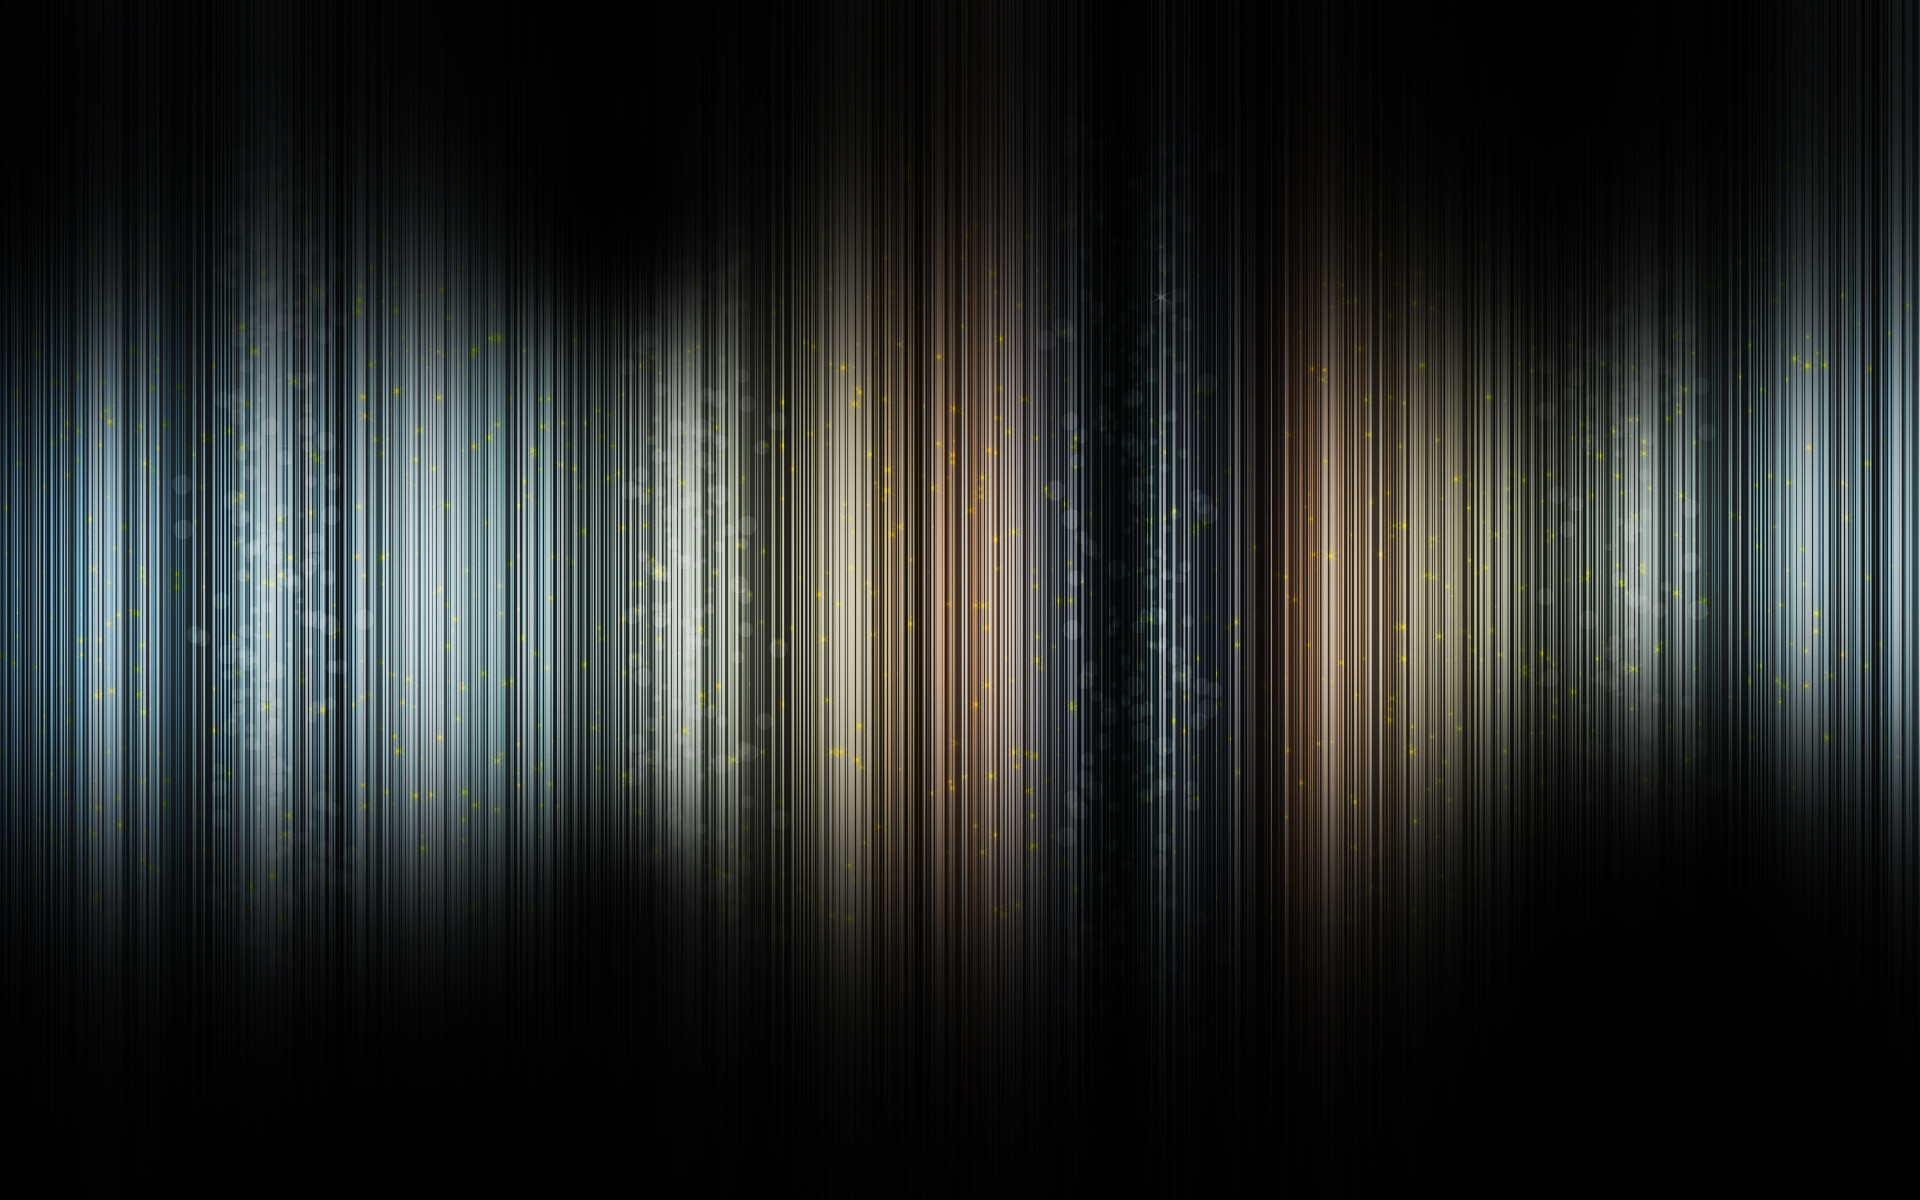 Abstract Hd Wallpapers Collection For Download 1920x1200